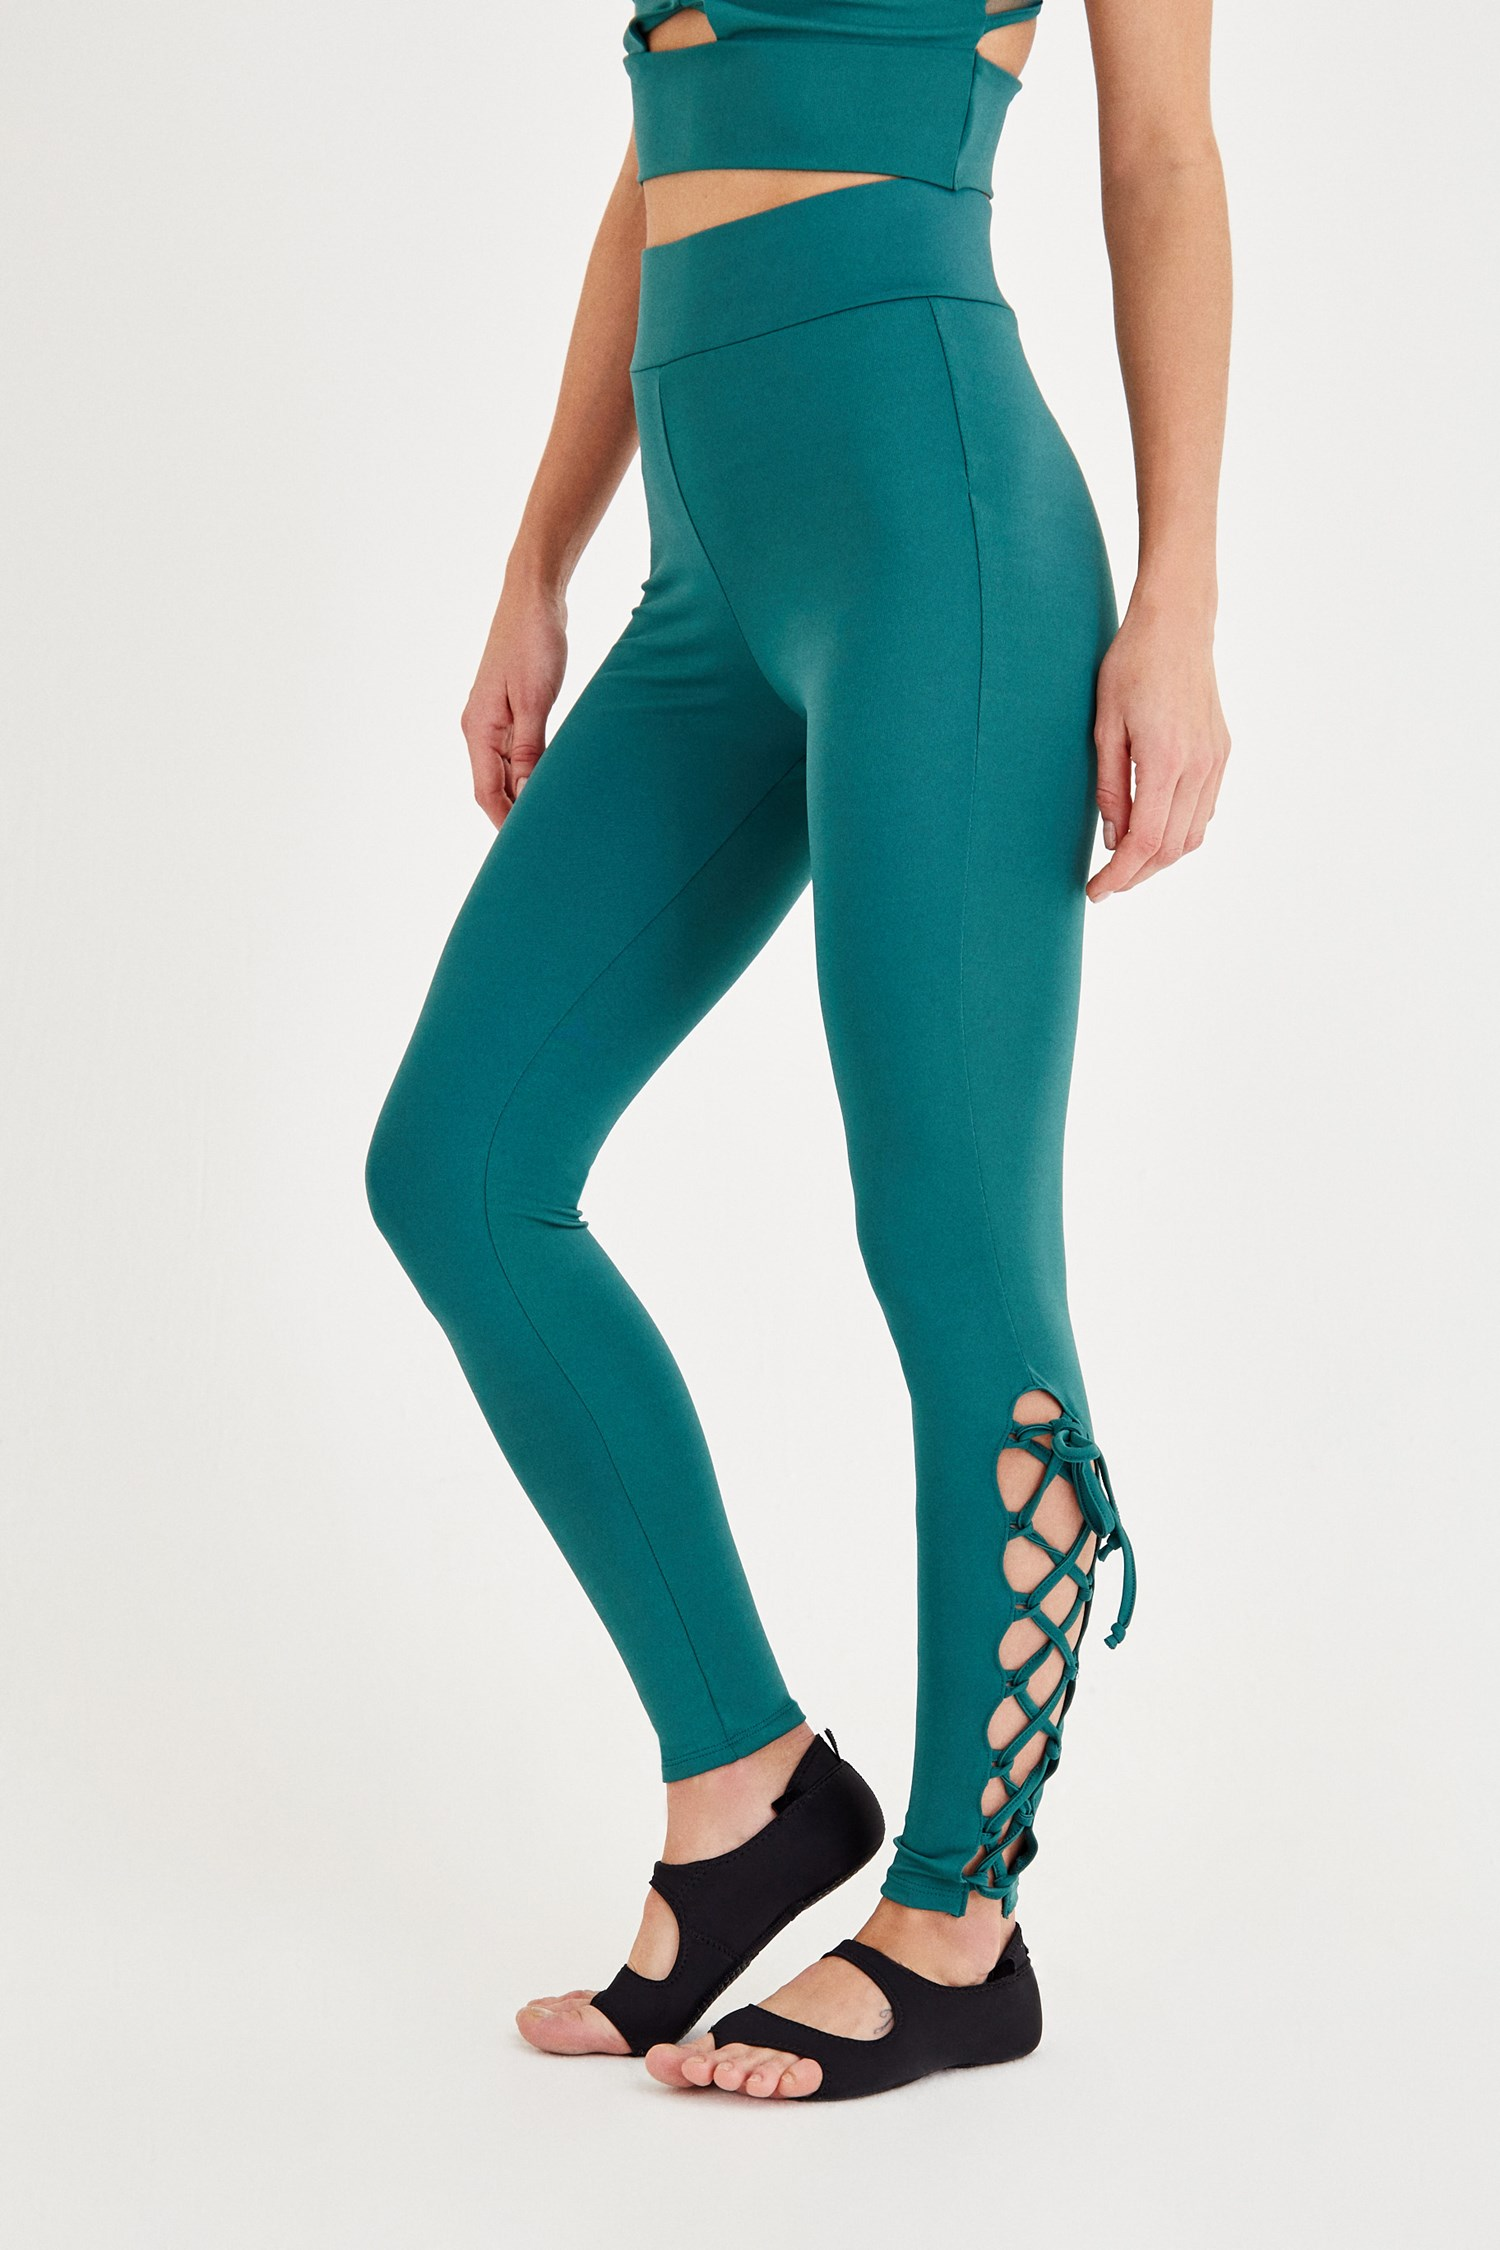 Women Green Sport Tights with Binding Detailed